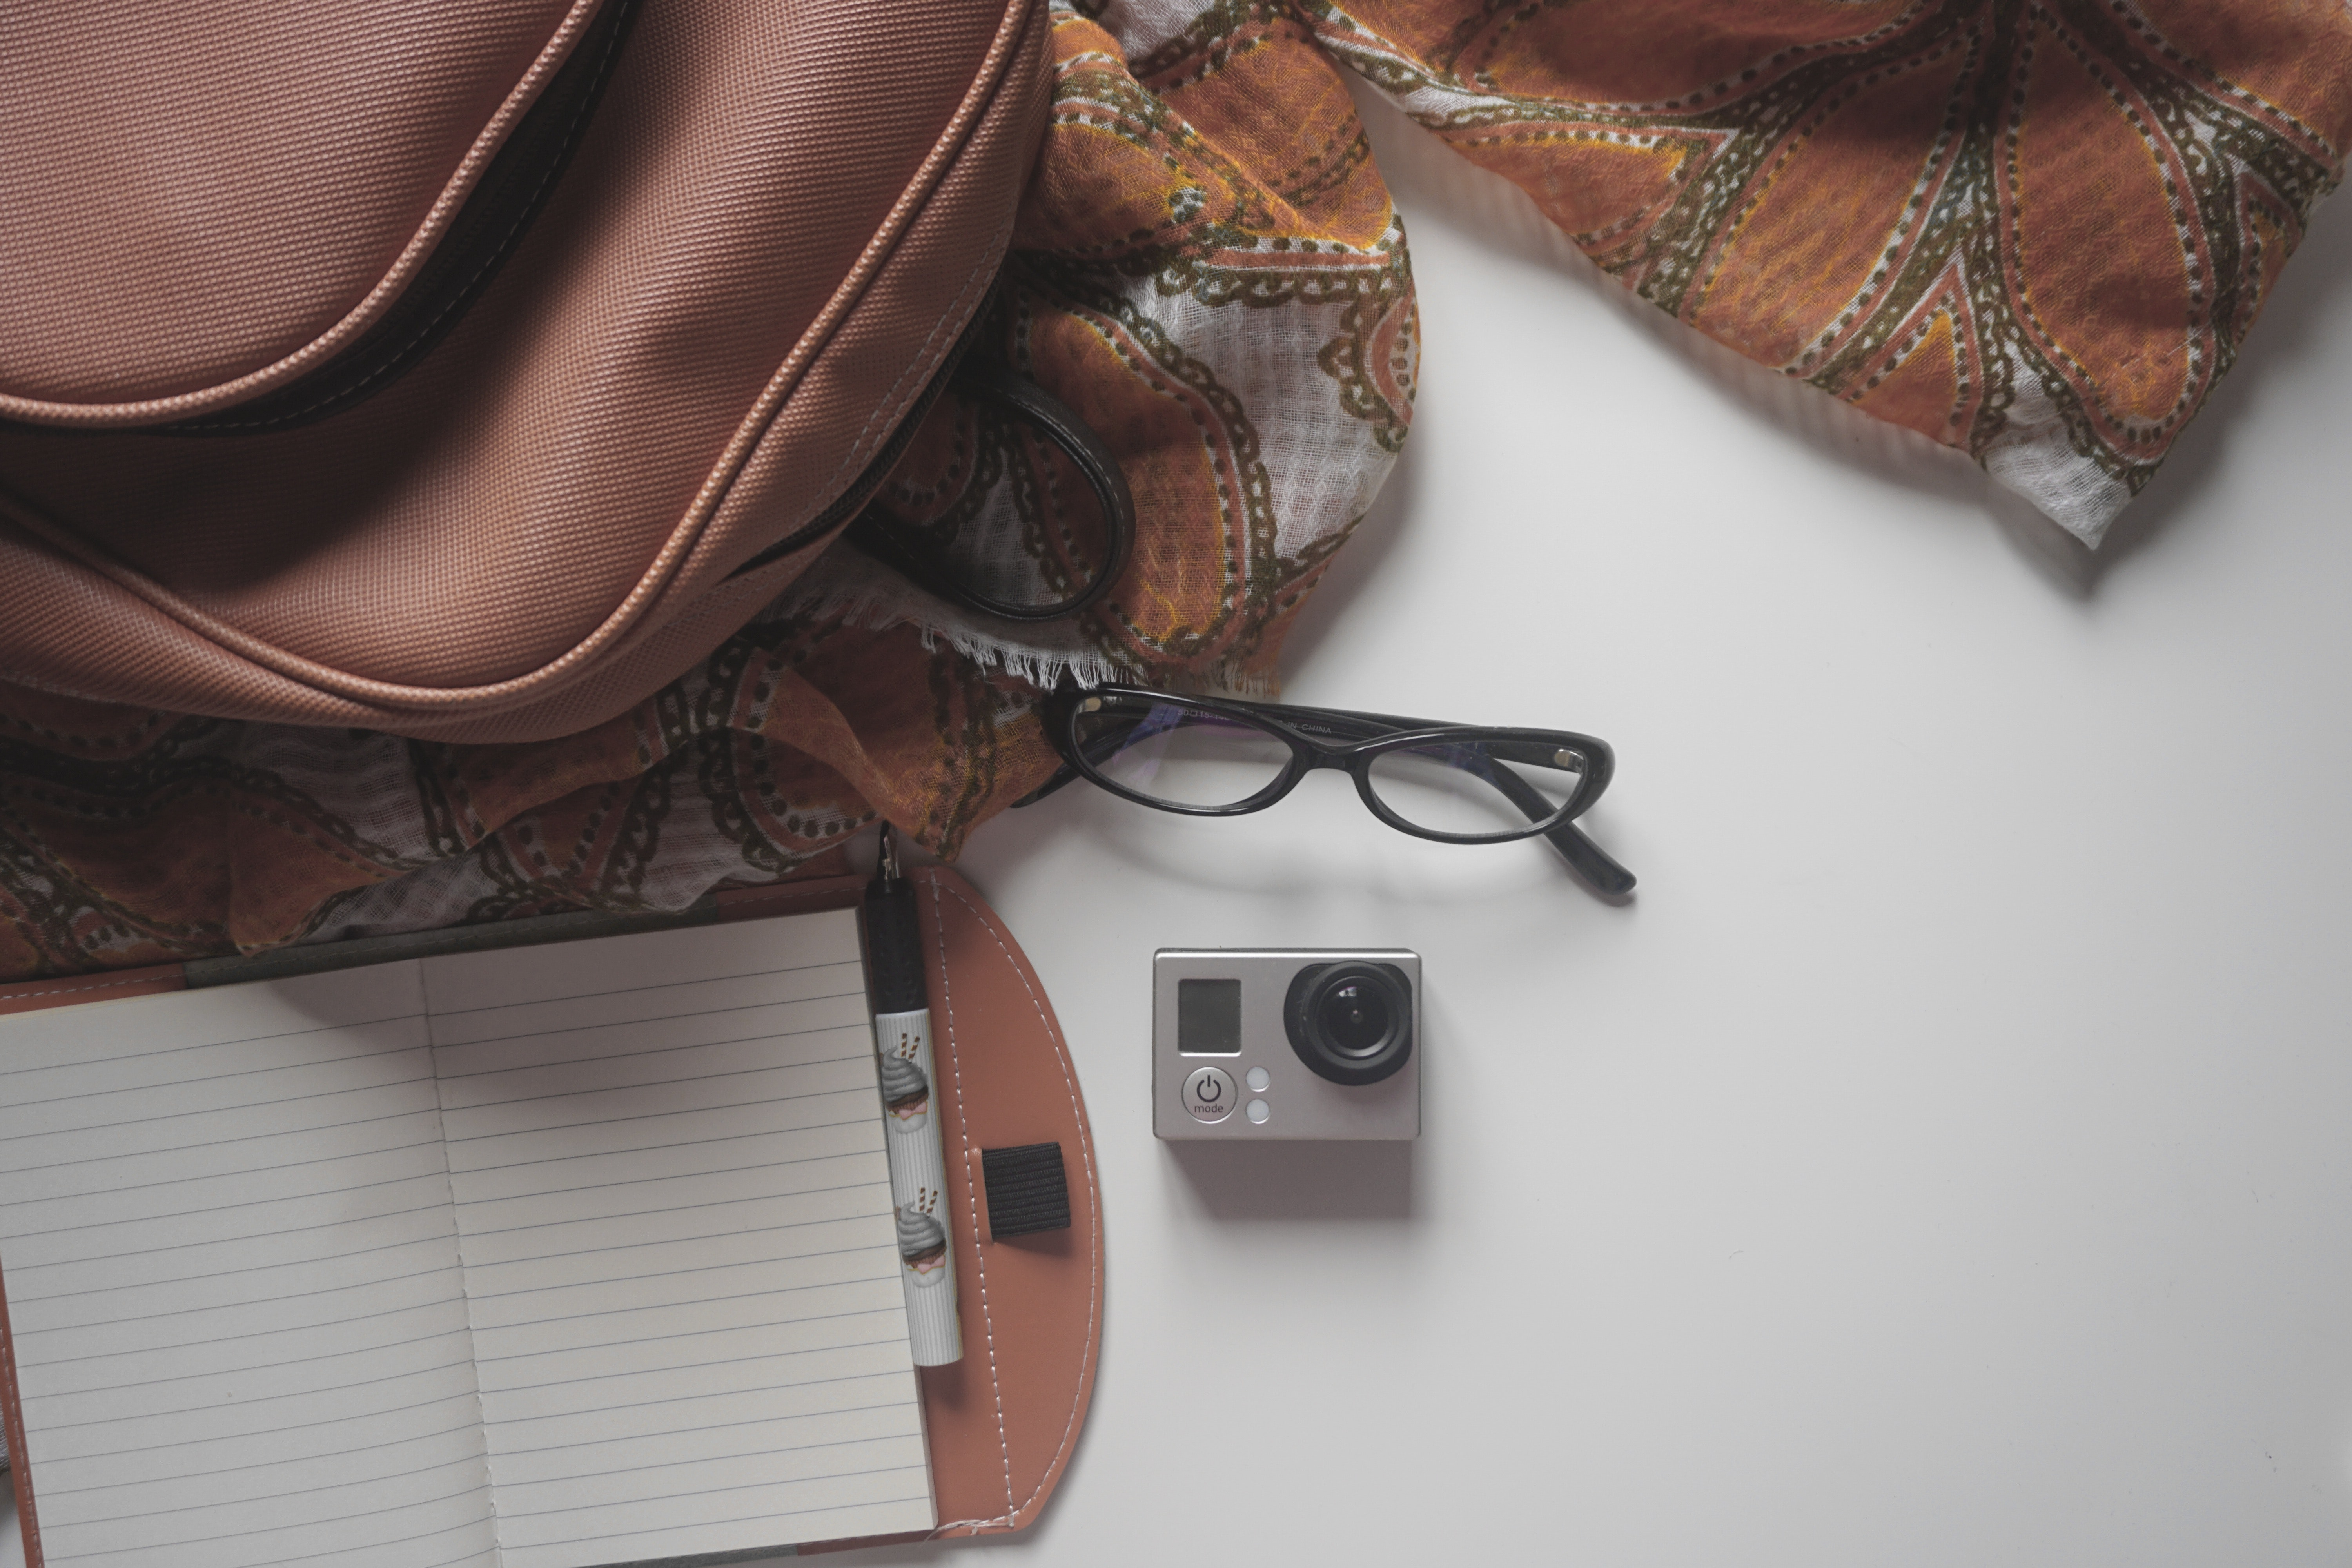 Black Eyeglasses on Top of the Gray and Black Action Camera in the White Surface, Accessories, Bag, Camera, Eyeglasses, HQ Photo